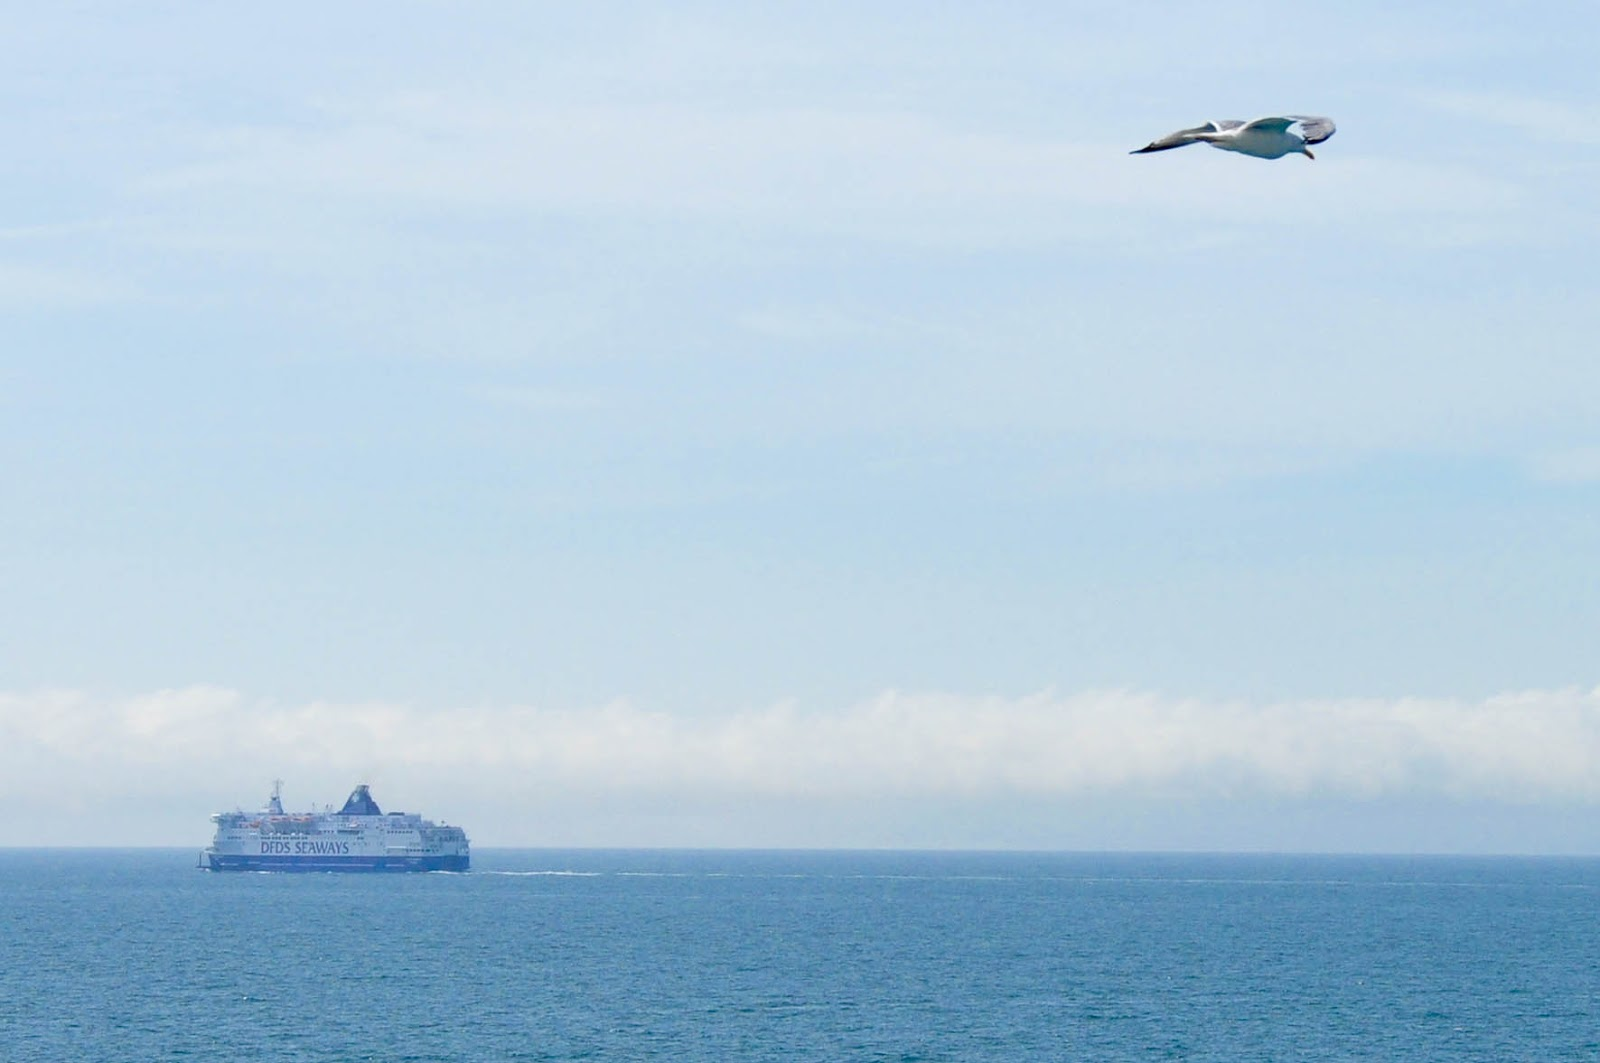 A seagull in flight and a DFDS ferry, the English Channel back from France